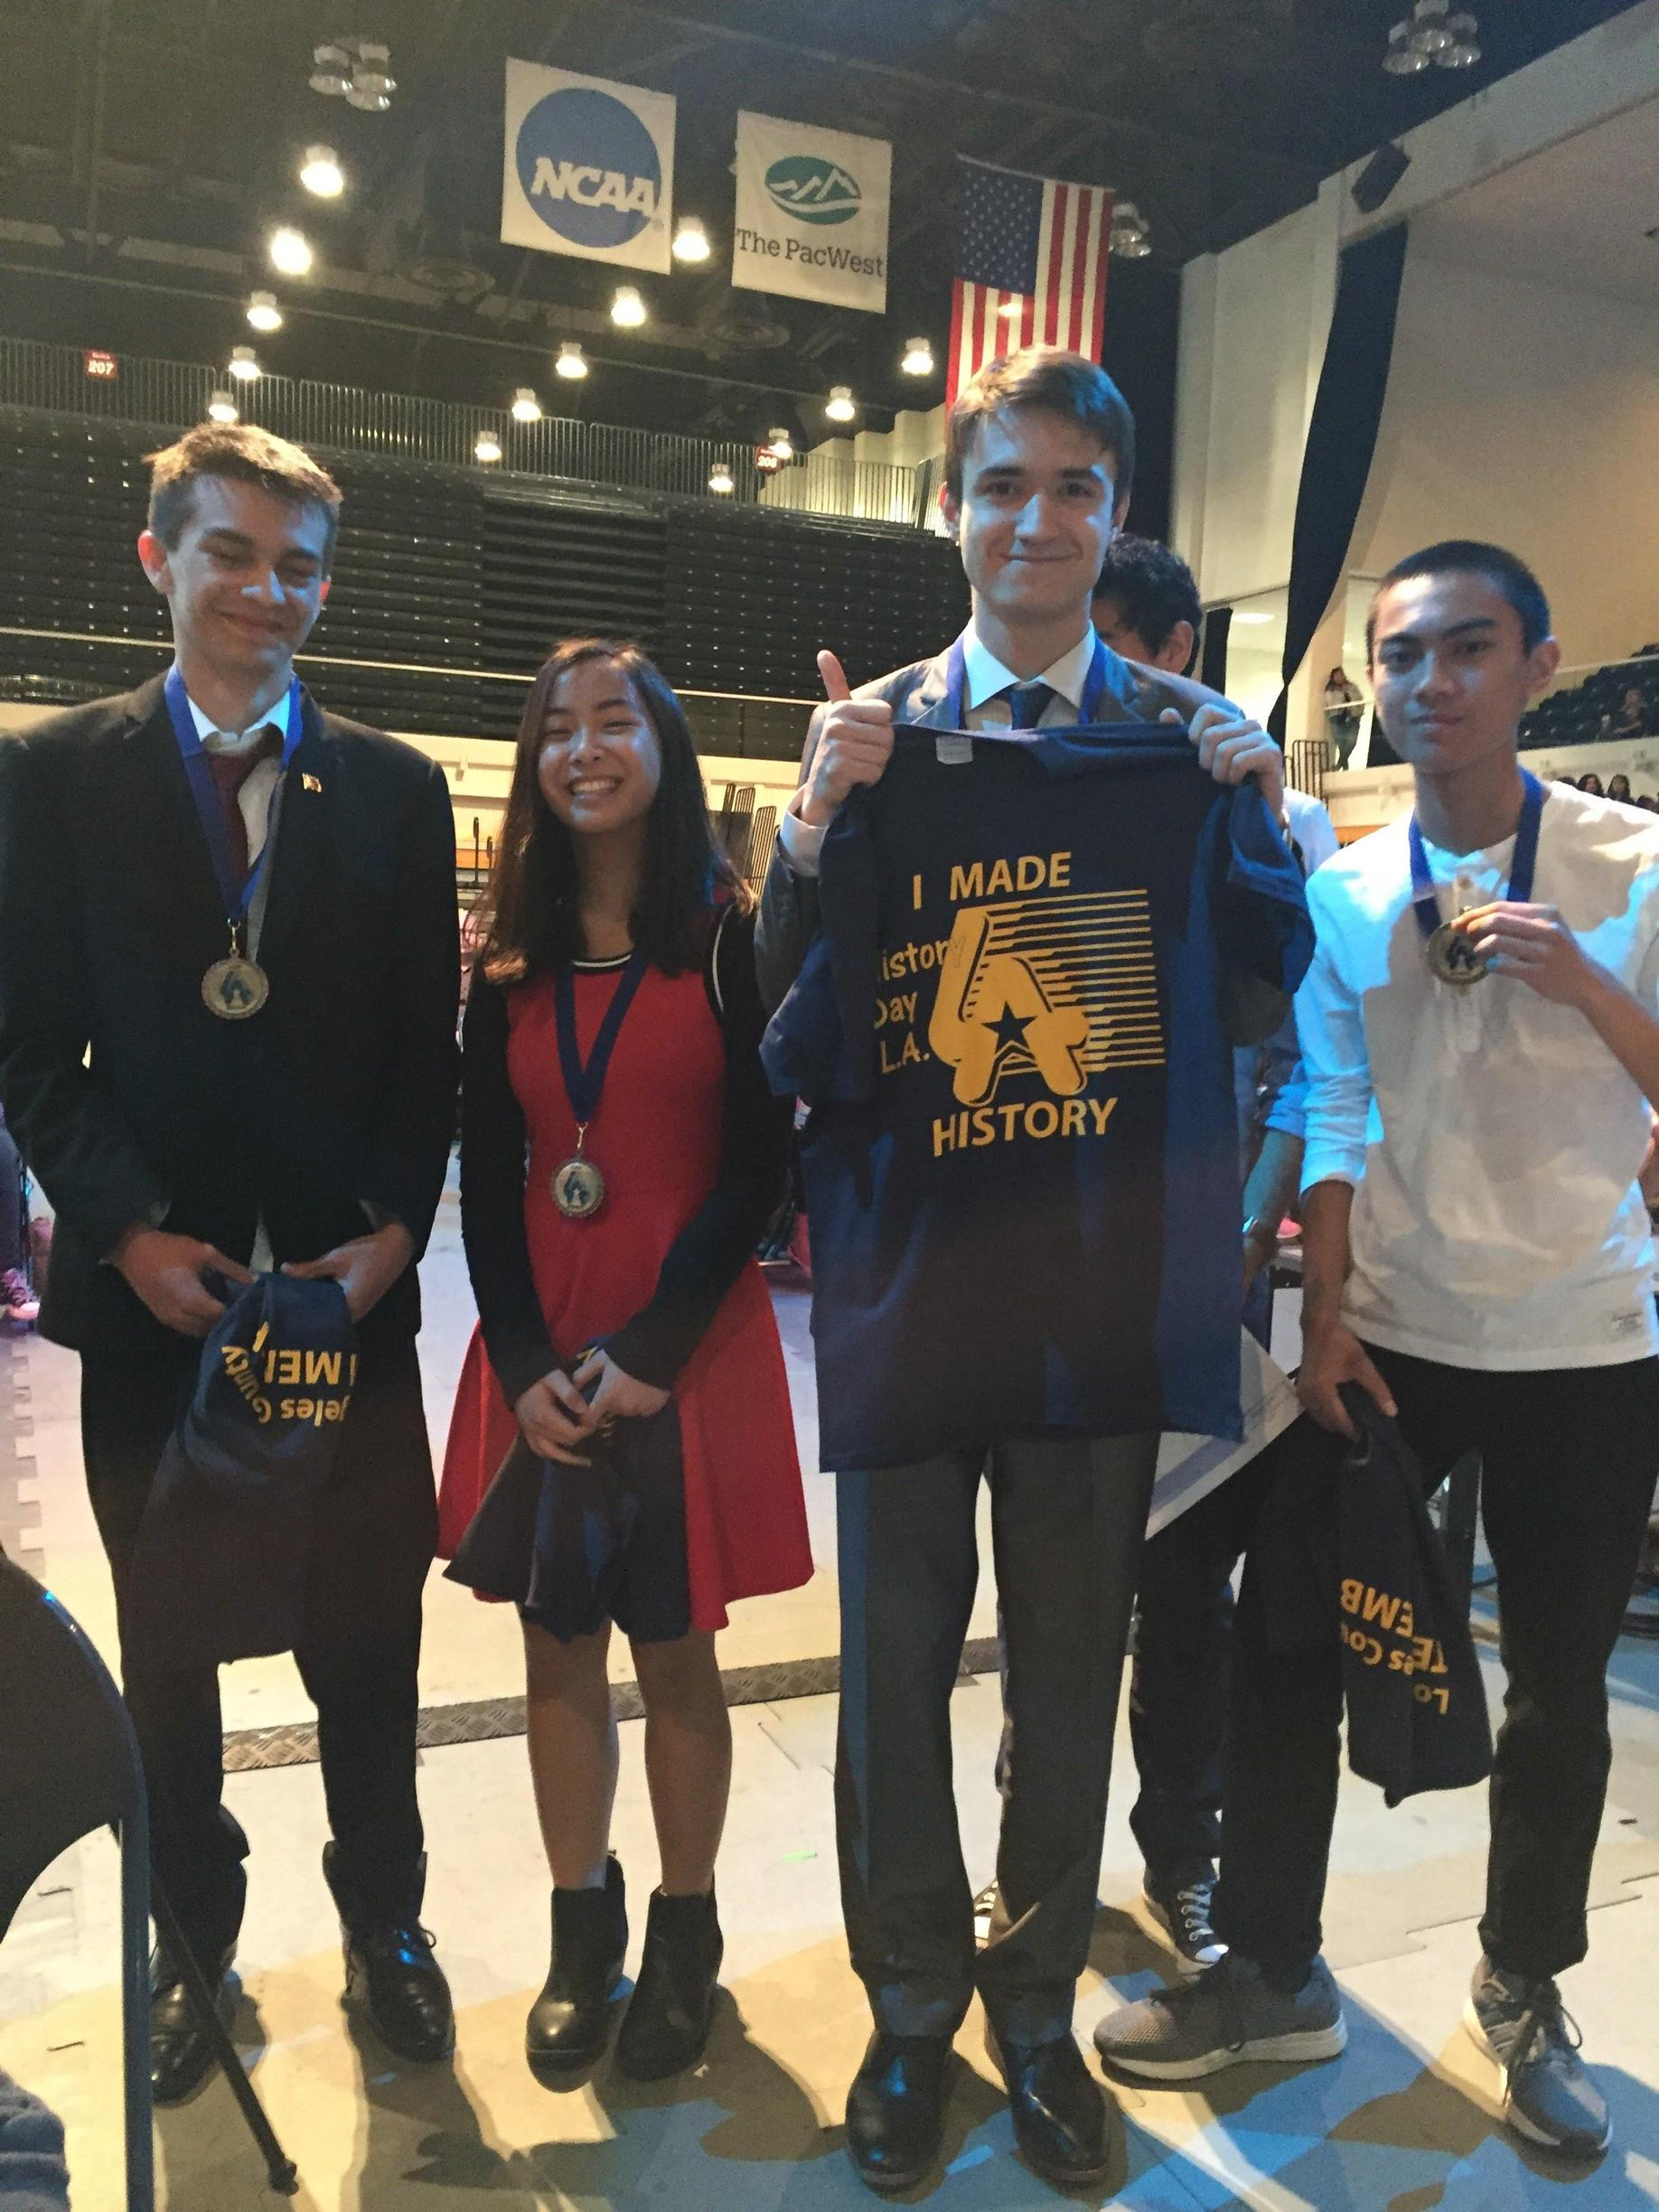 Group of students with shirts and medals